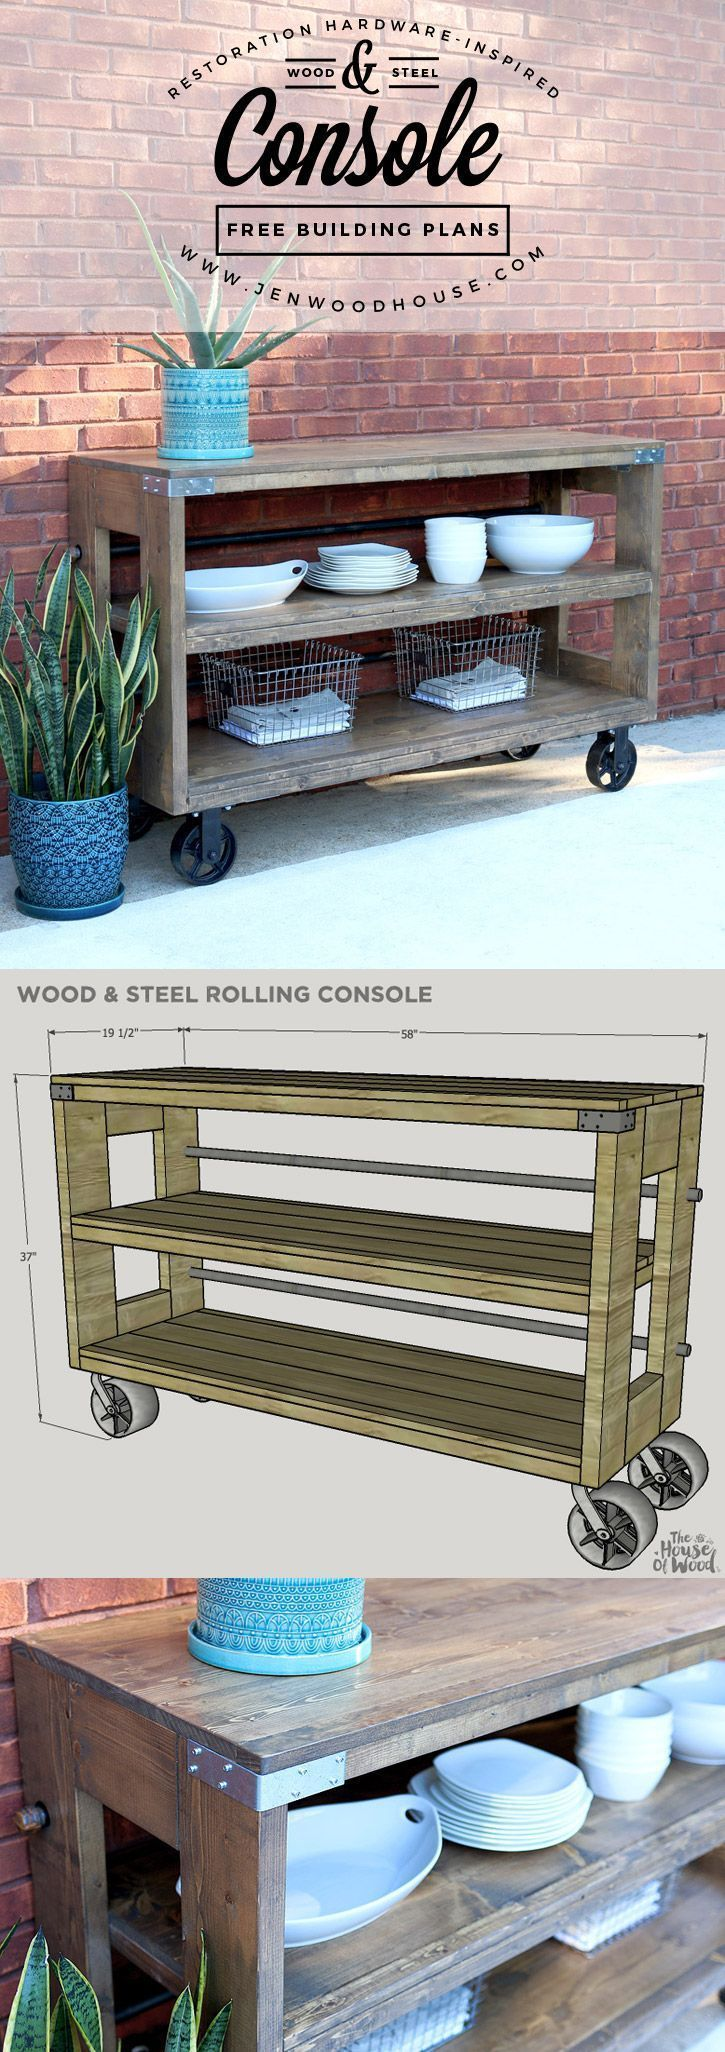 wooden console table kitchen console table 25 best ideas about Wooden Console Table on Pinterest Wooden spools Diy cable spool table and Lineman